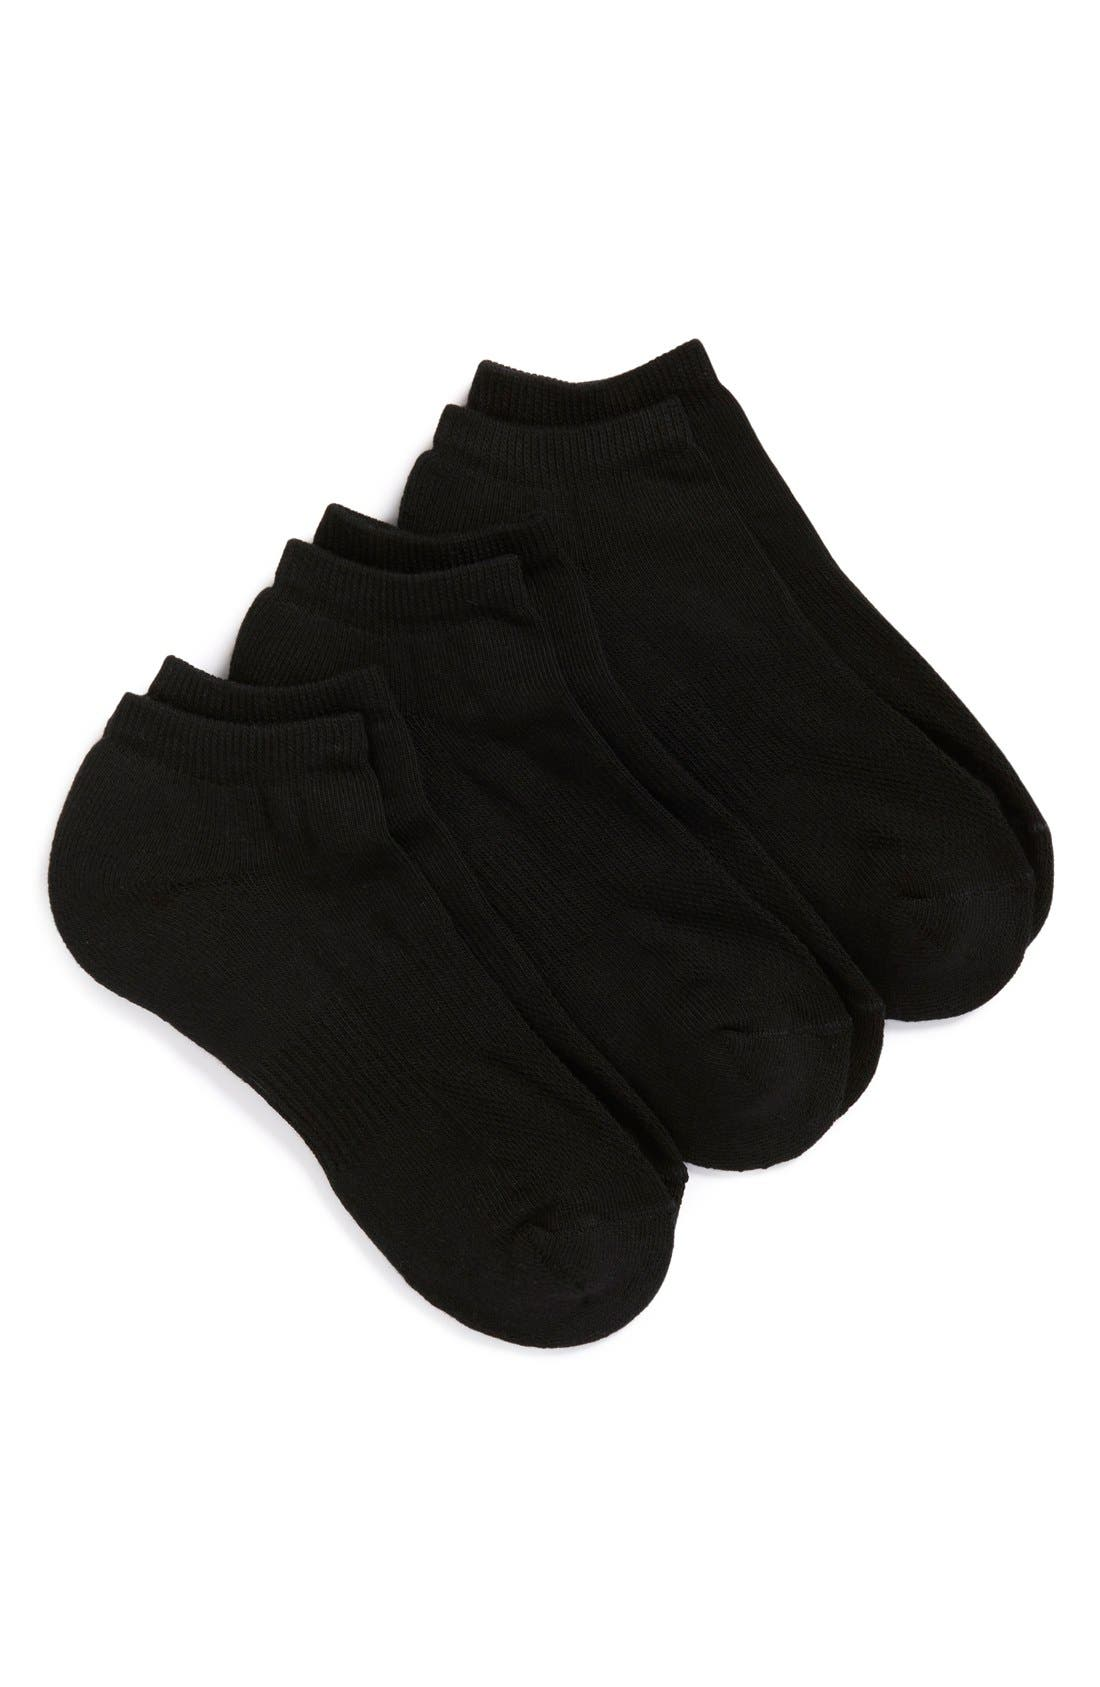 Nordstrom Men's Shop 3-Pack No-Show Athletic Socks